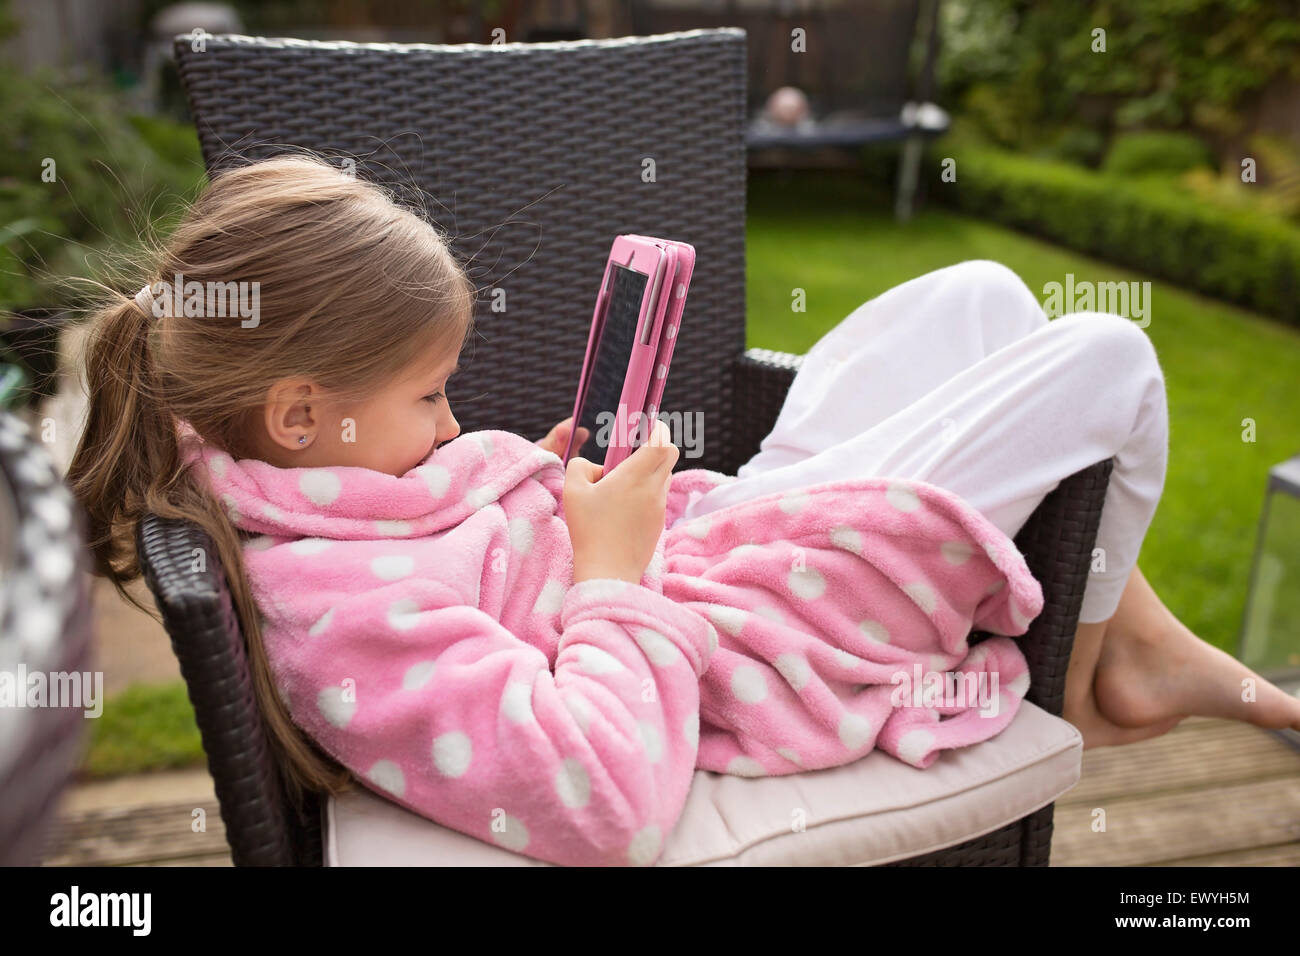 Girl watching film on electronic device - Stock Image